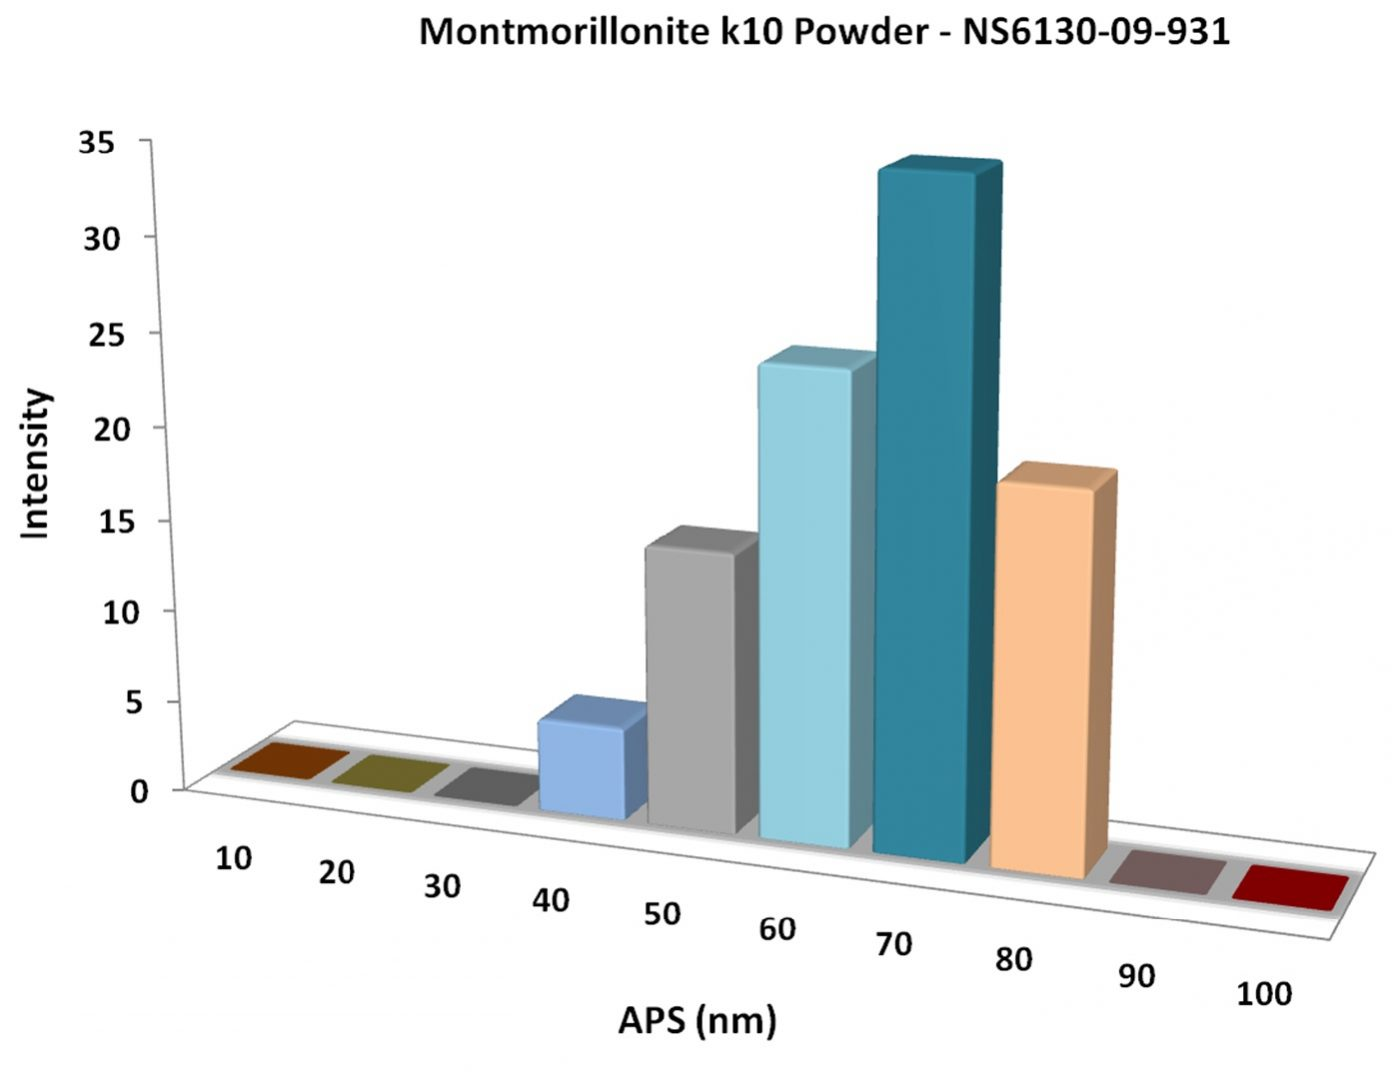 Montmorillonite k10 Powder